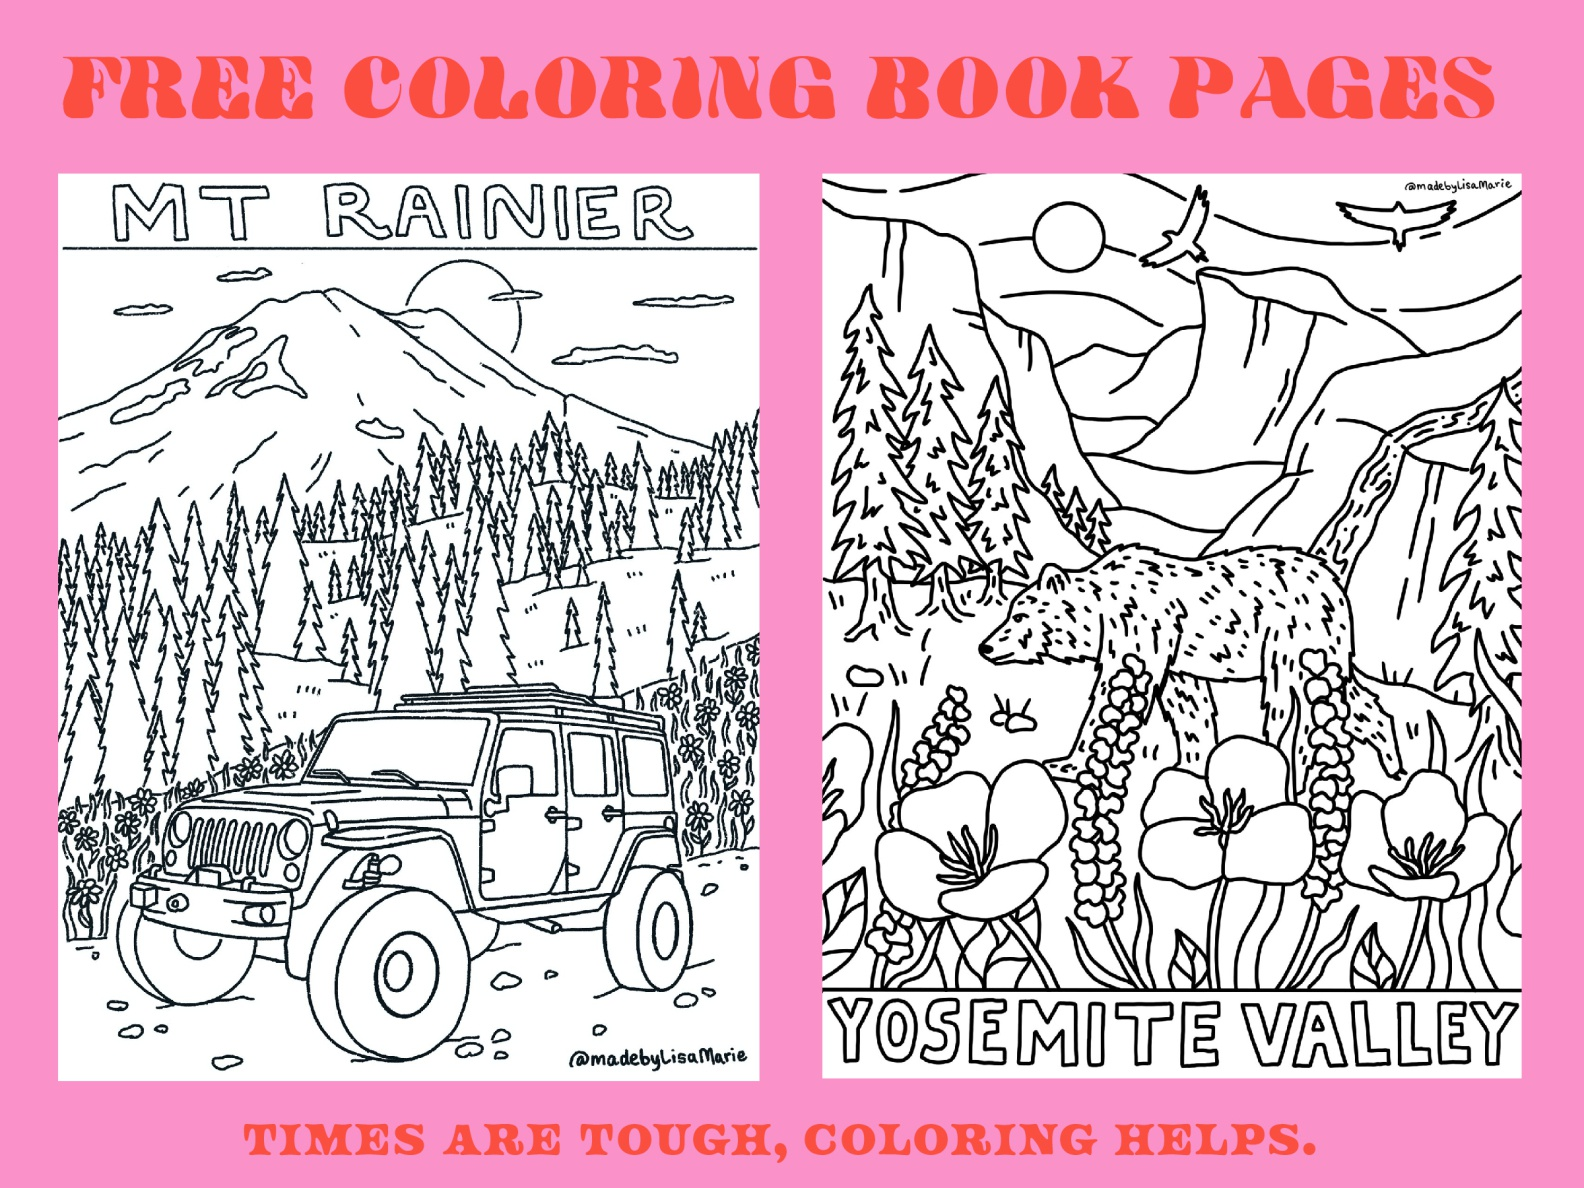 - Free Coloring Book Pages By Lisa McCormick On Dribbble